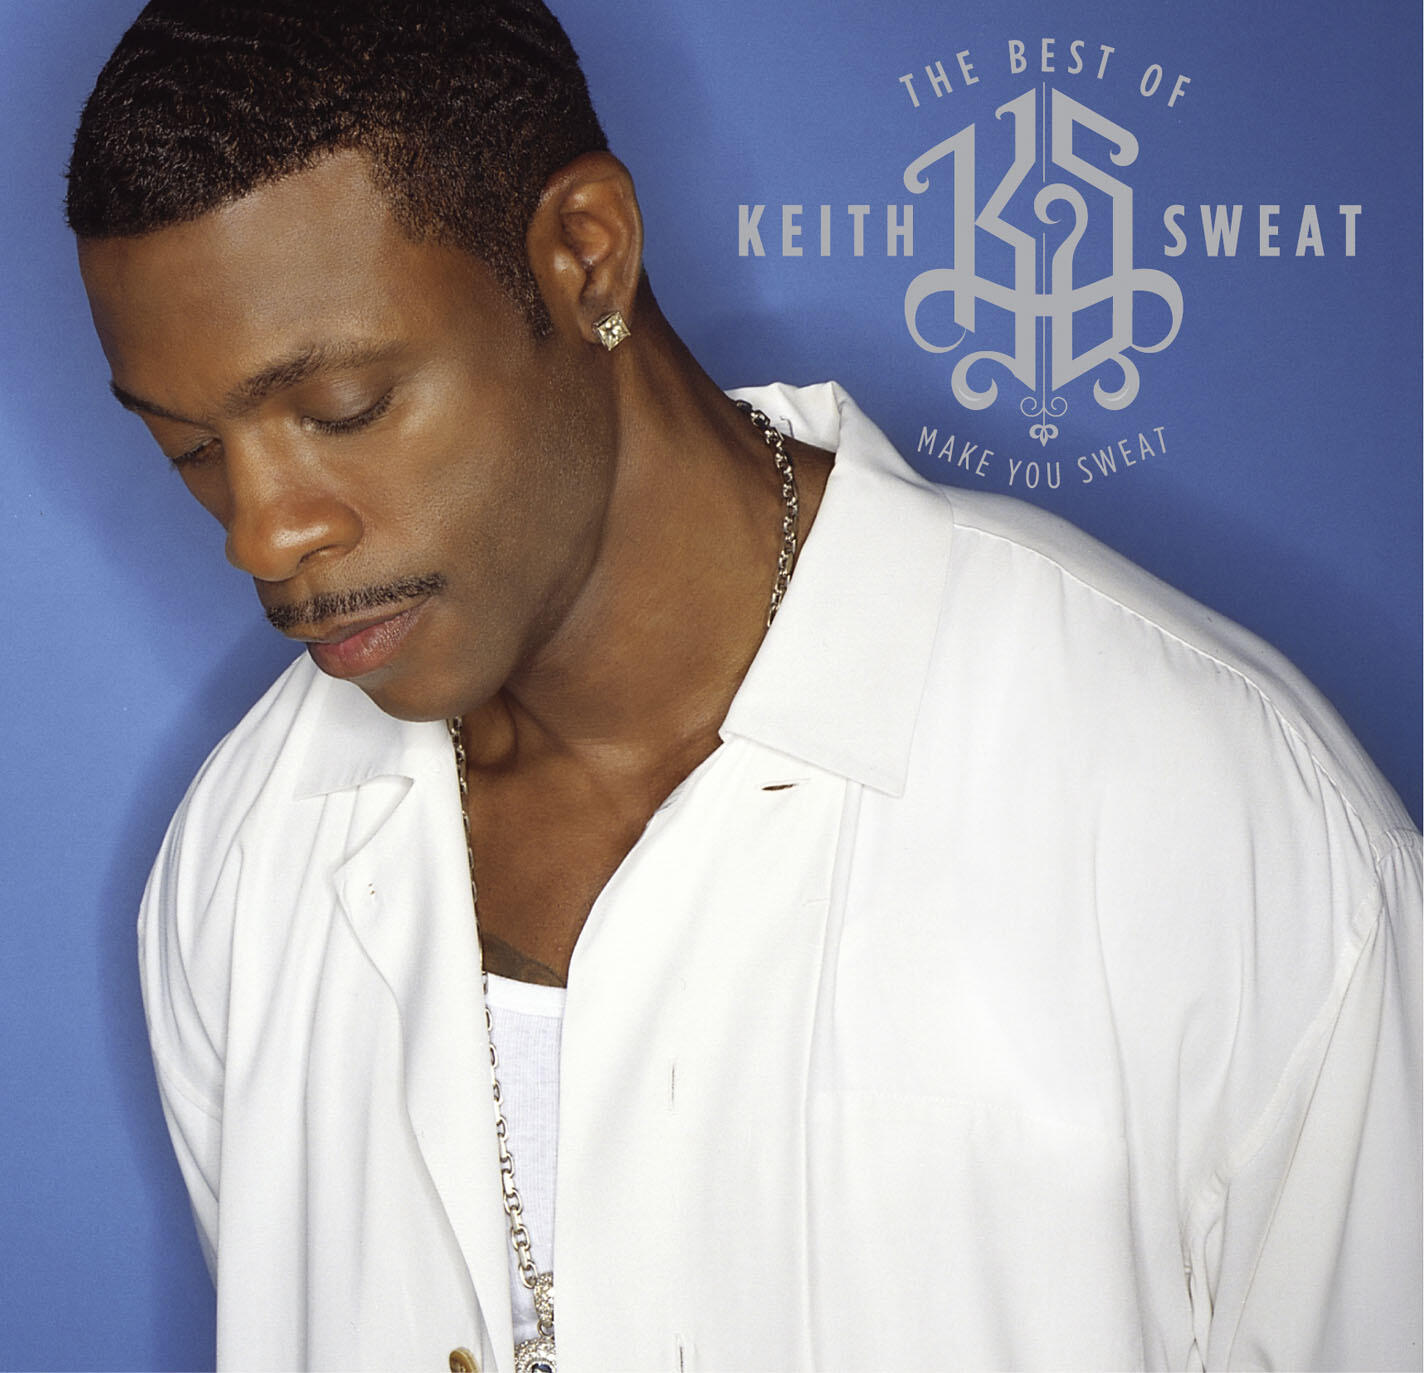 Gerald Levert Songs for stream free songskeith sweat & similar artists   iheartradio